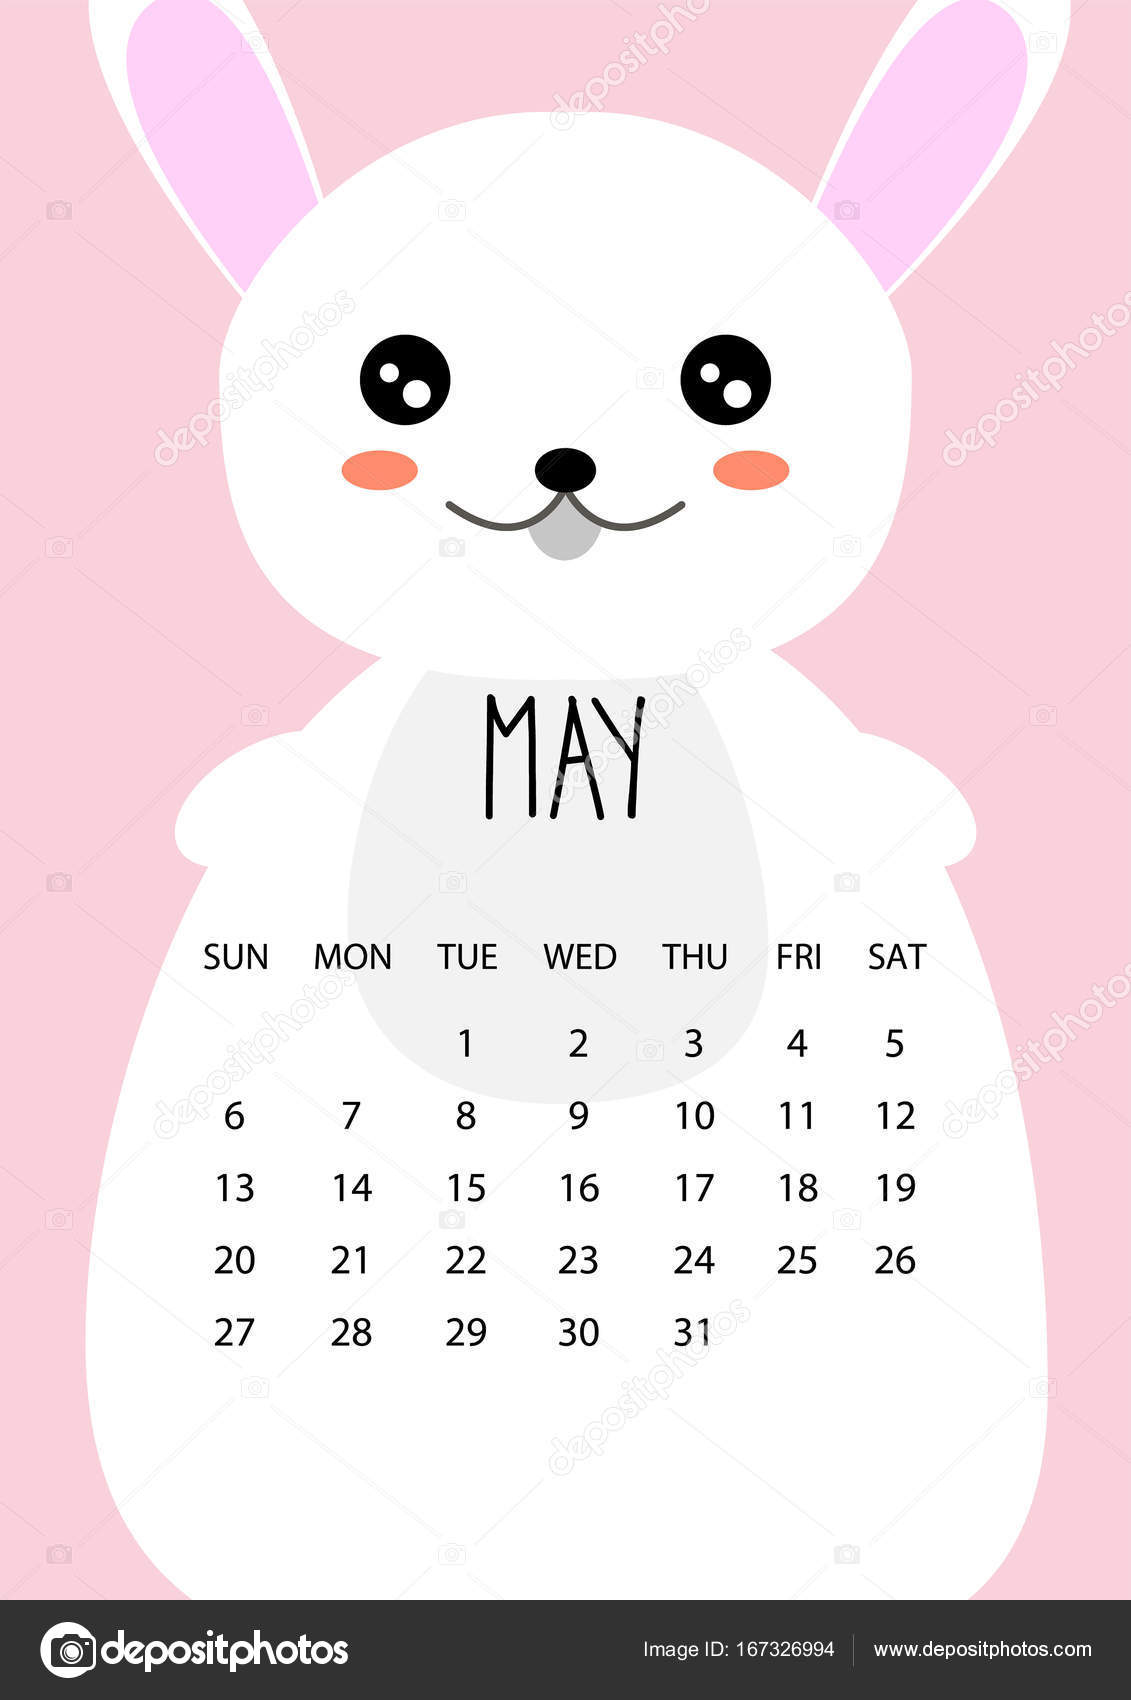 Cute Calendar Illustration : Cute month calendar design for year may a format